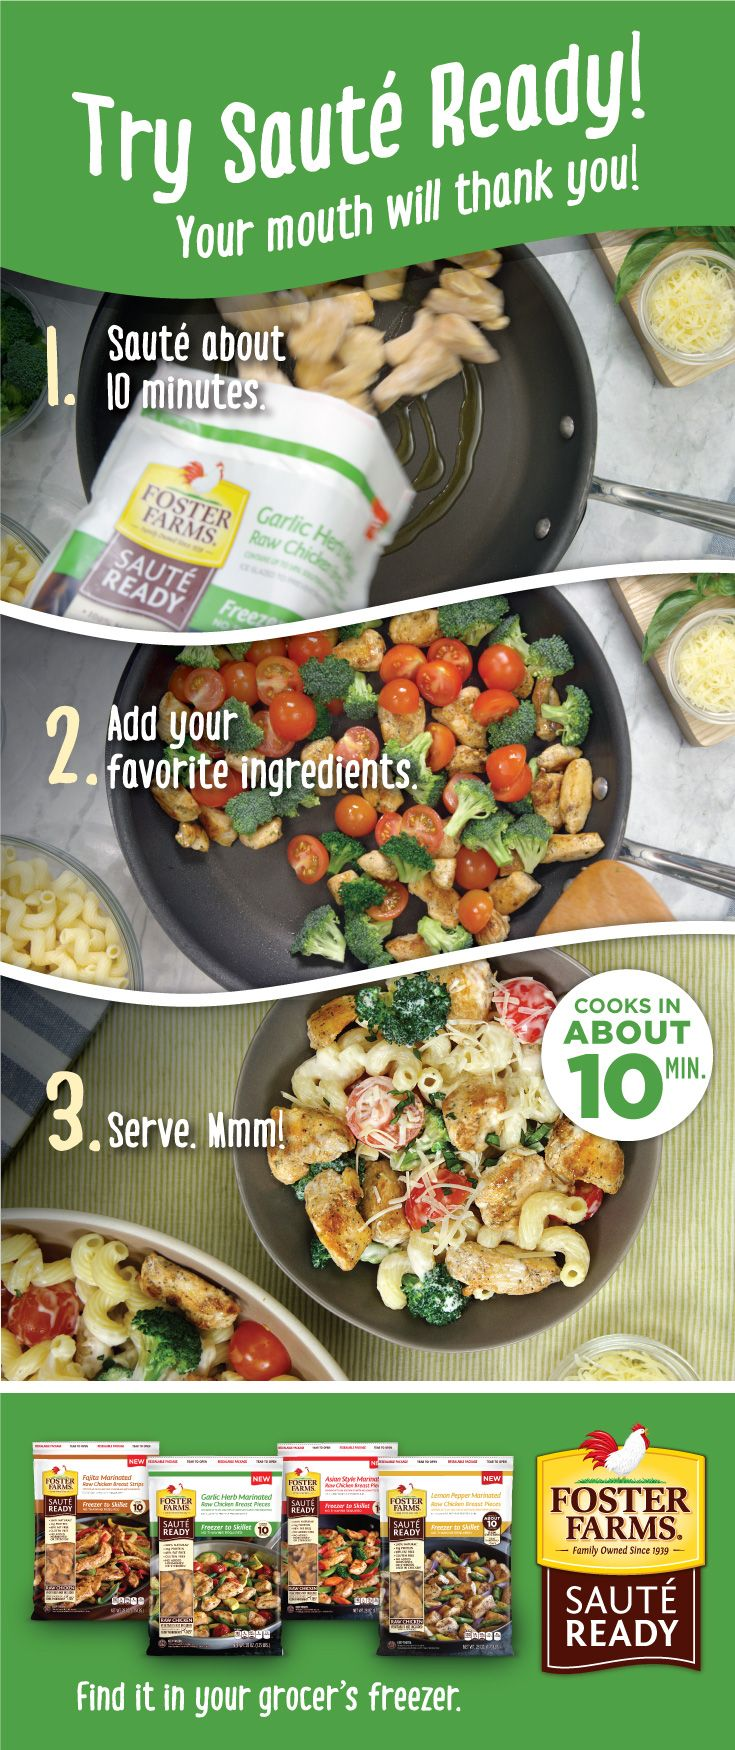 """""""MMMM!"""" Try Sauté Ready — your mouth will thank you! Find it in your grocer's freezer http://fosterfarms.com/sauteready"""